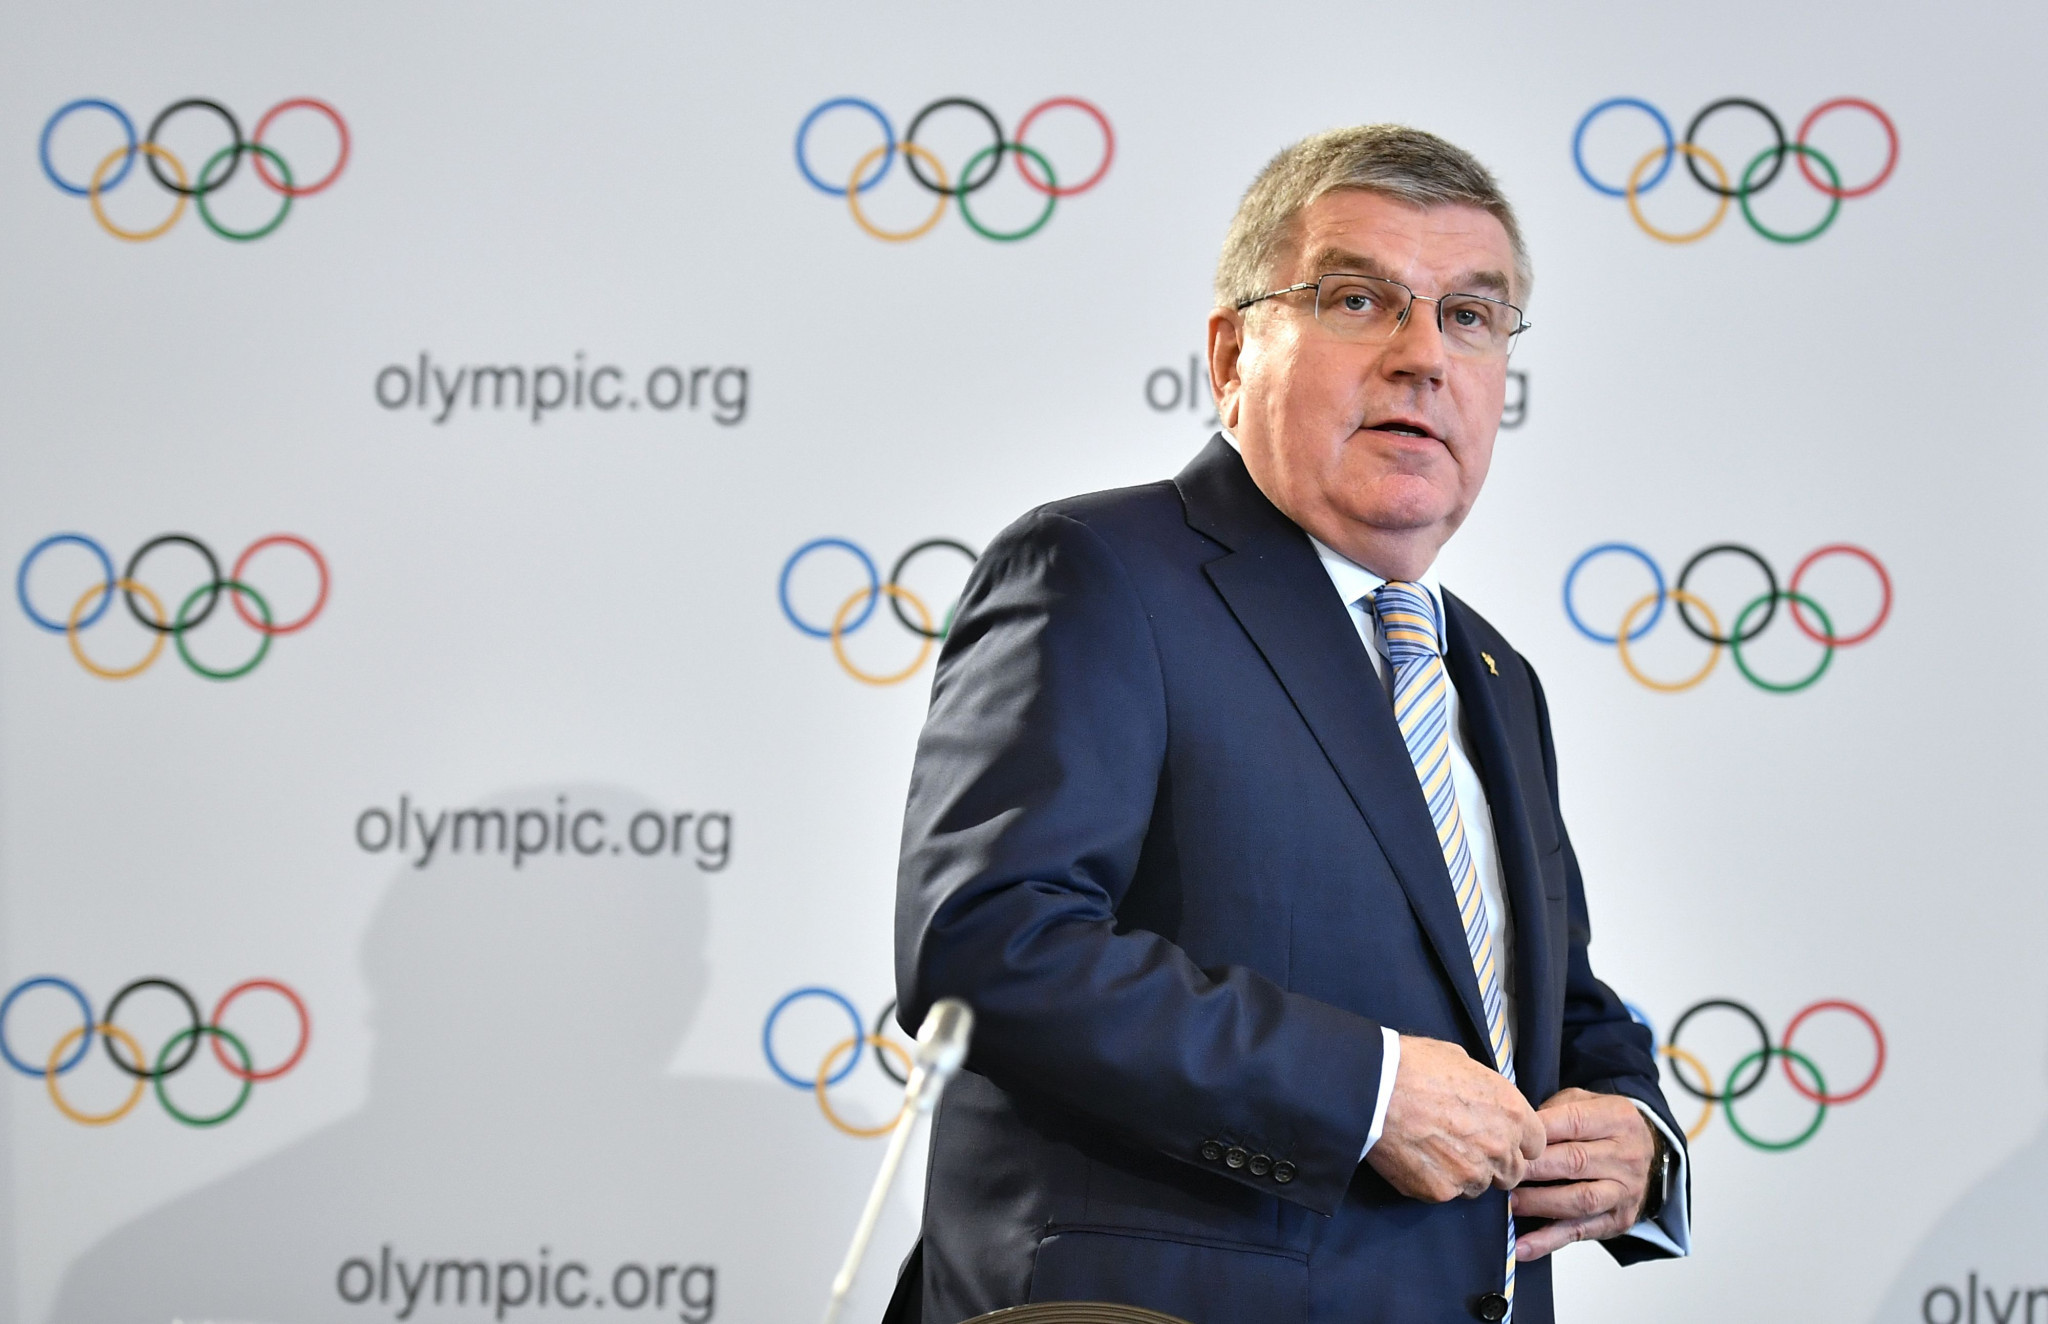 Representatives from the International Olympic Committee, including President Thomas Bach, are meeting with CONI in Lausanne today to discuss Italy's faltering bid for the the 2026 Winter Olympic and Paralympic Games ©Getty Images